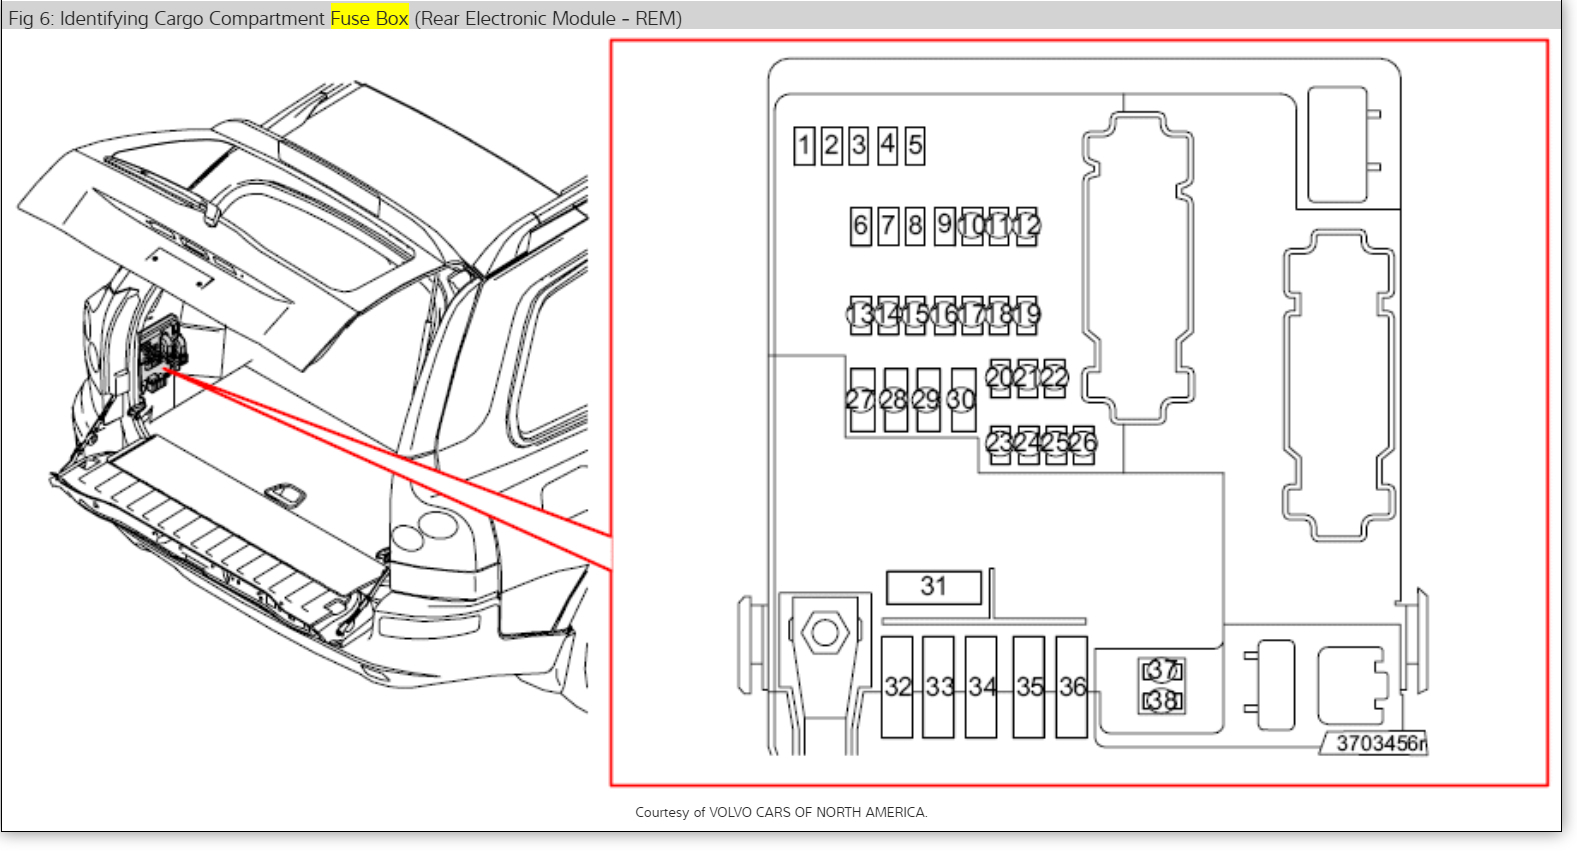 2004 volvo xc90 wiring diagram nissan 1400 bakkie parts rear  for free